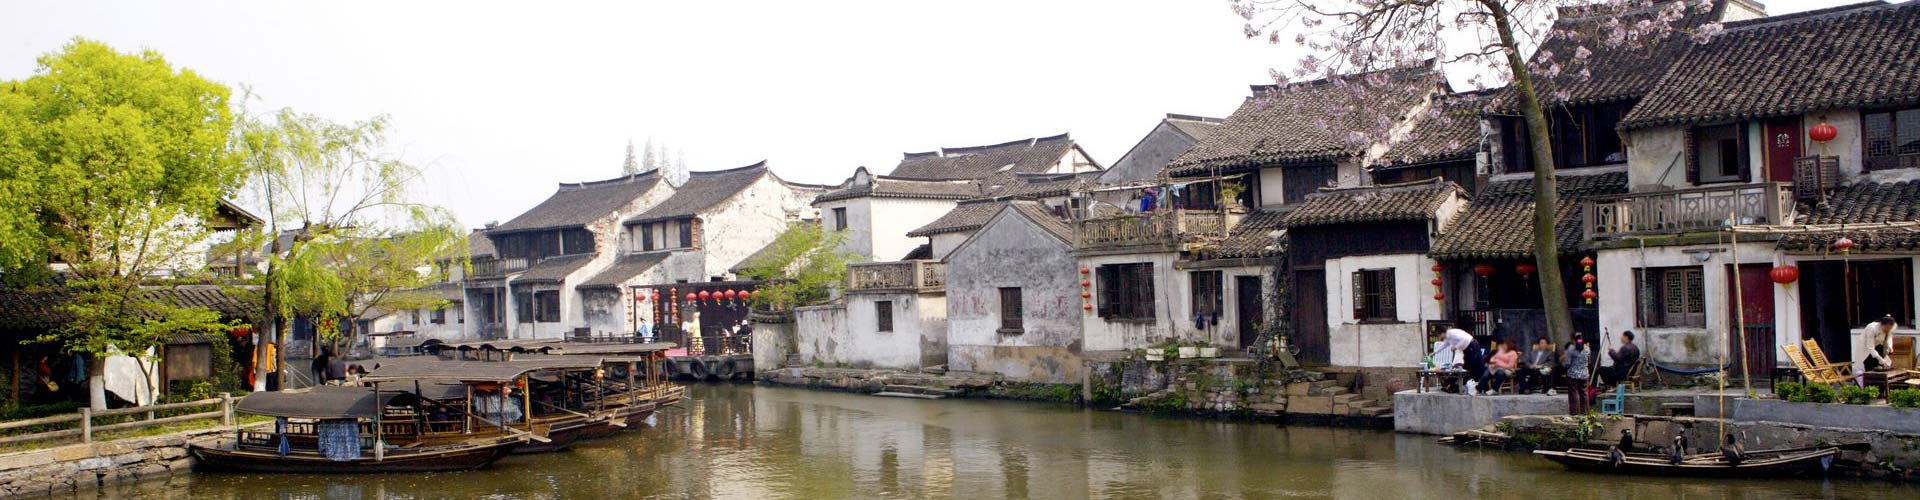 1 Day Round Trip to Tongli Town from Shanghai